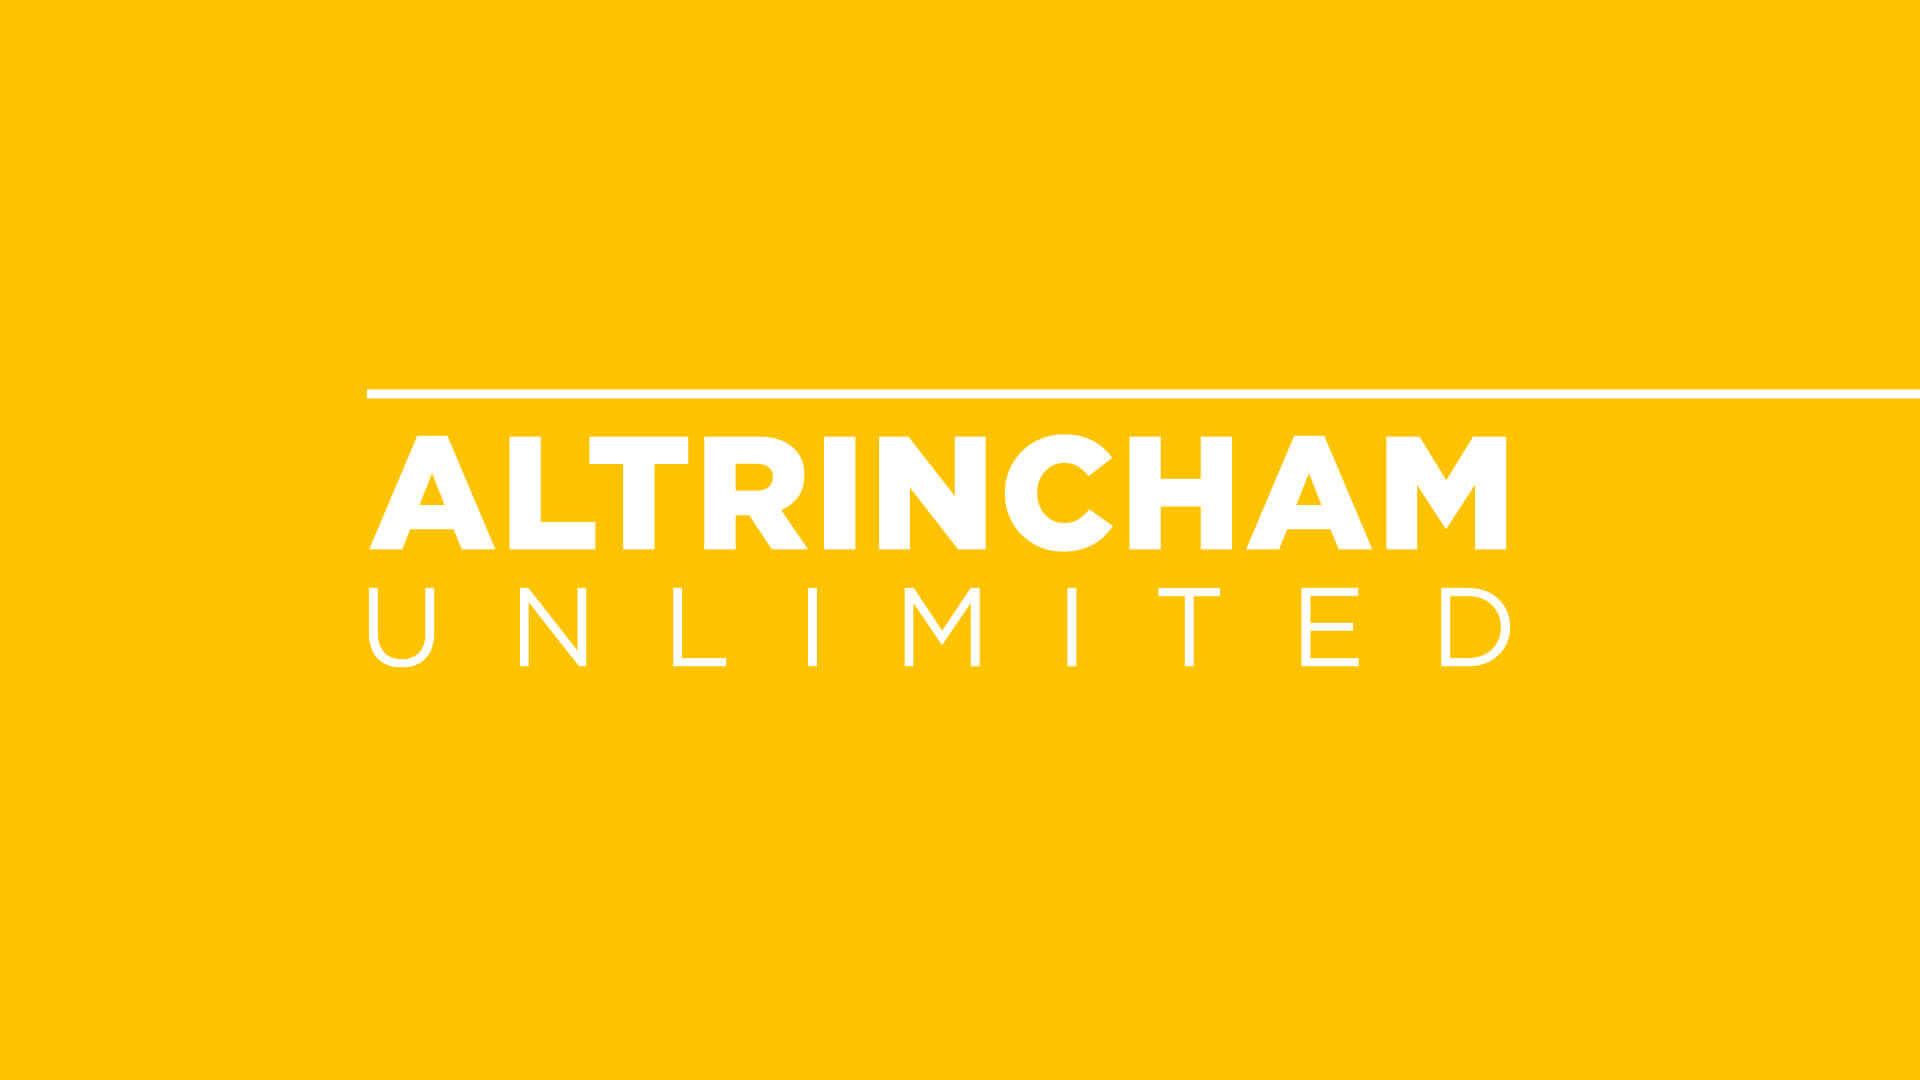 Altrincham Unlimited image